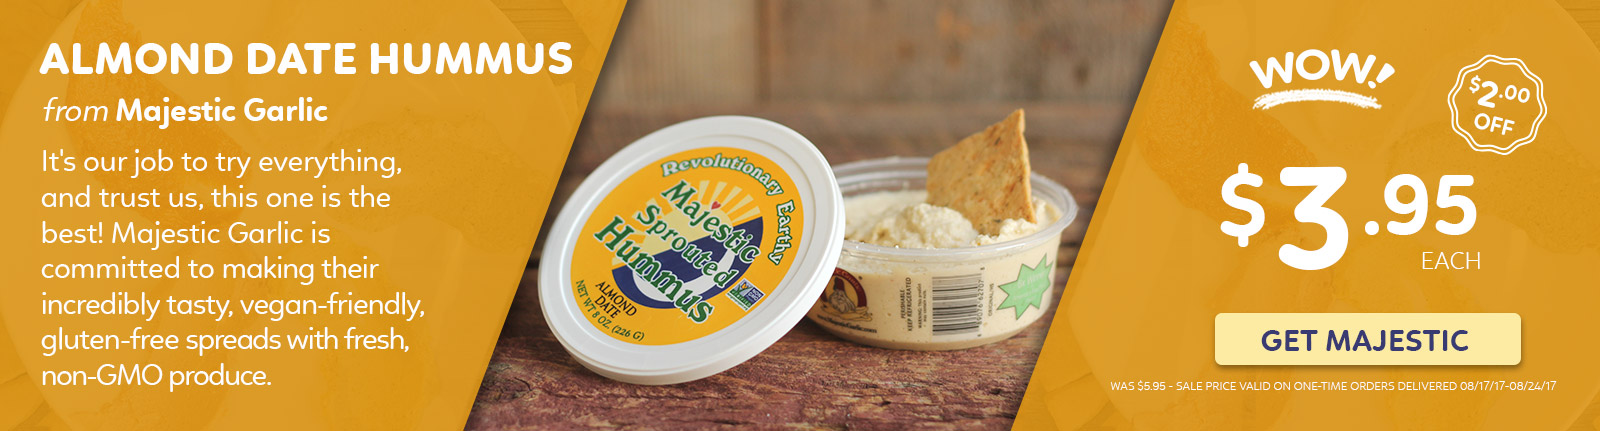 WOW! Majestic Garlic Hummus $2Off